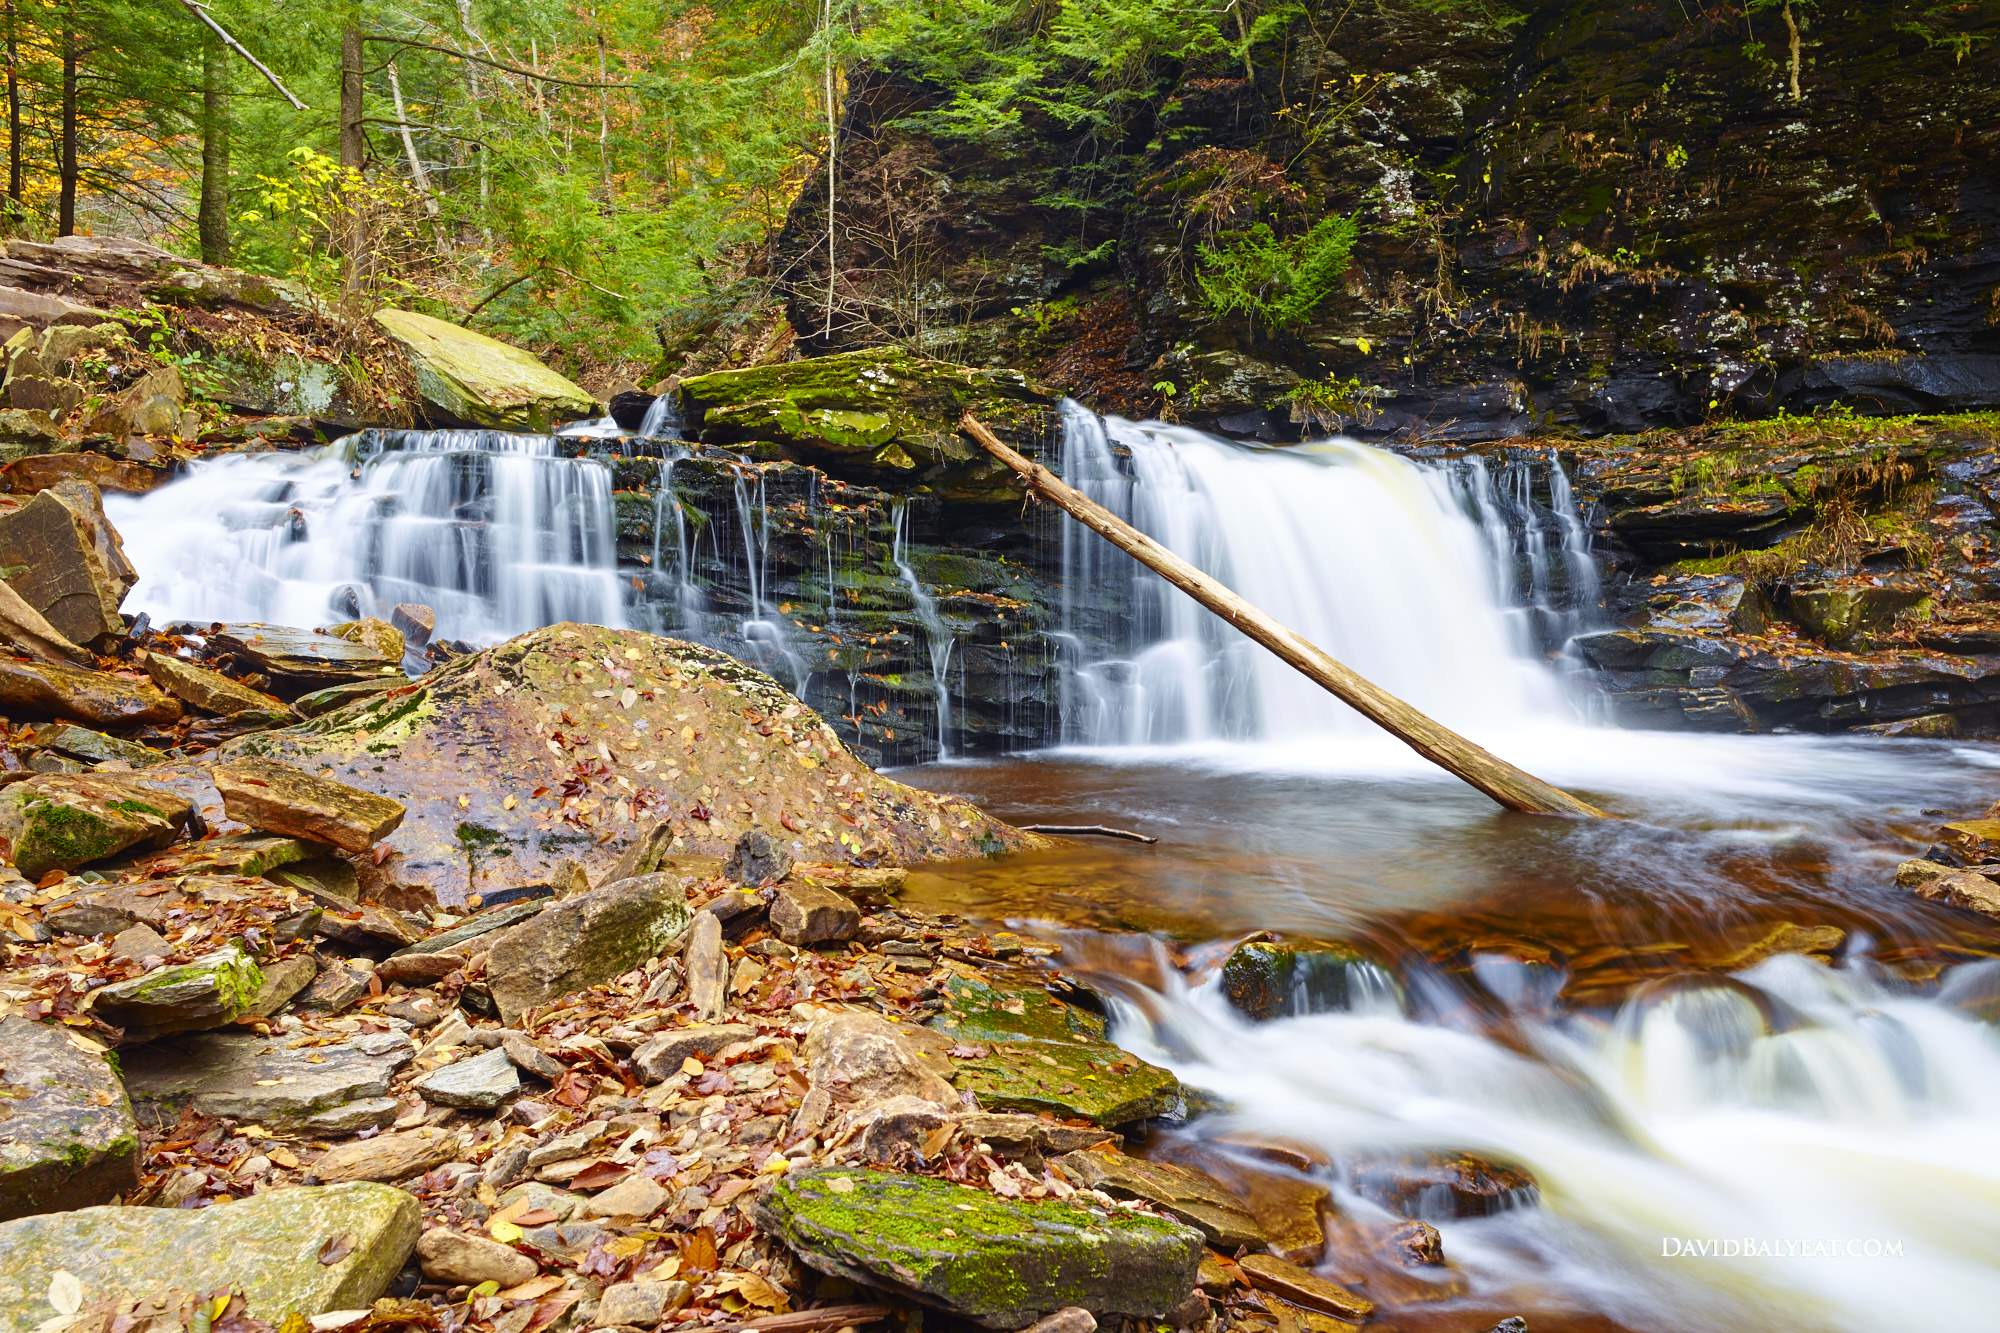 ricketts glen state park waterfalls fall foliage autumn high